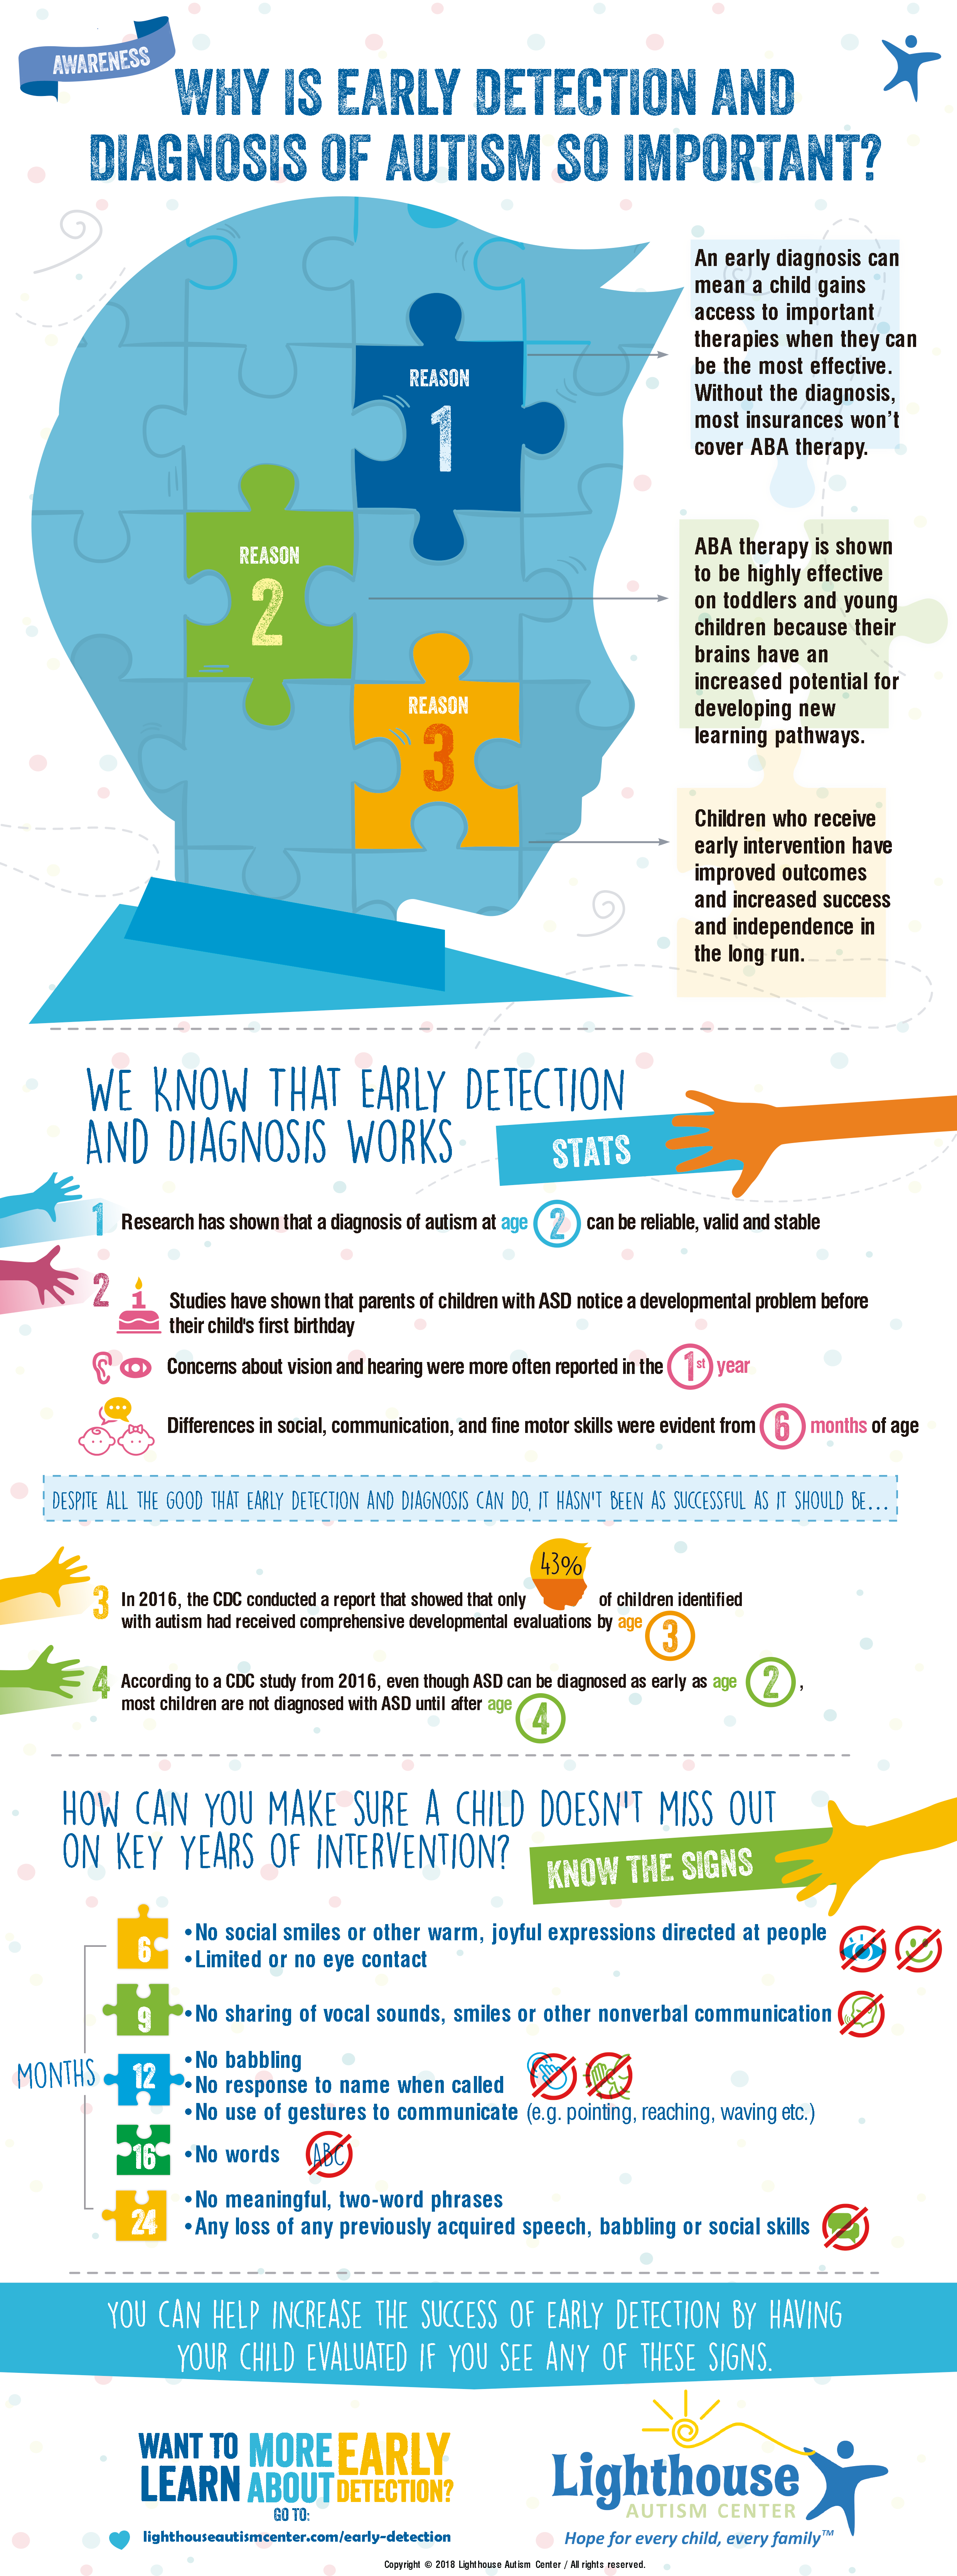 infographic - early detection and diagnosis of autism